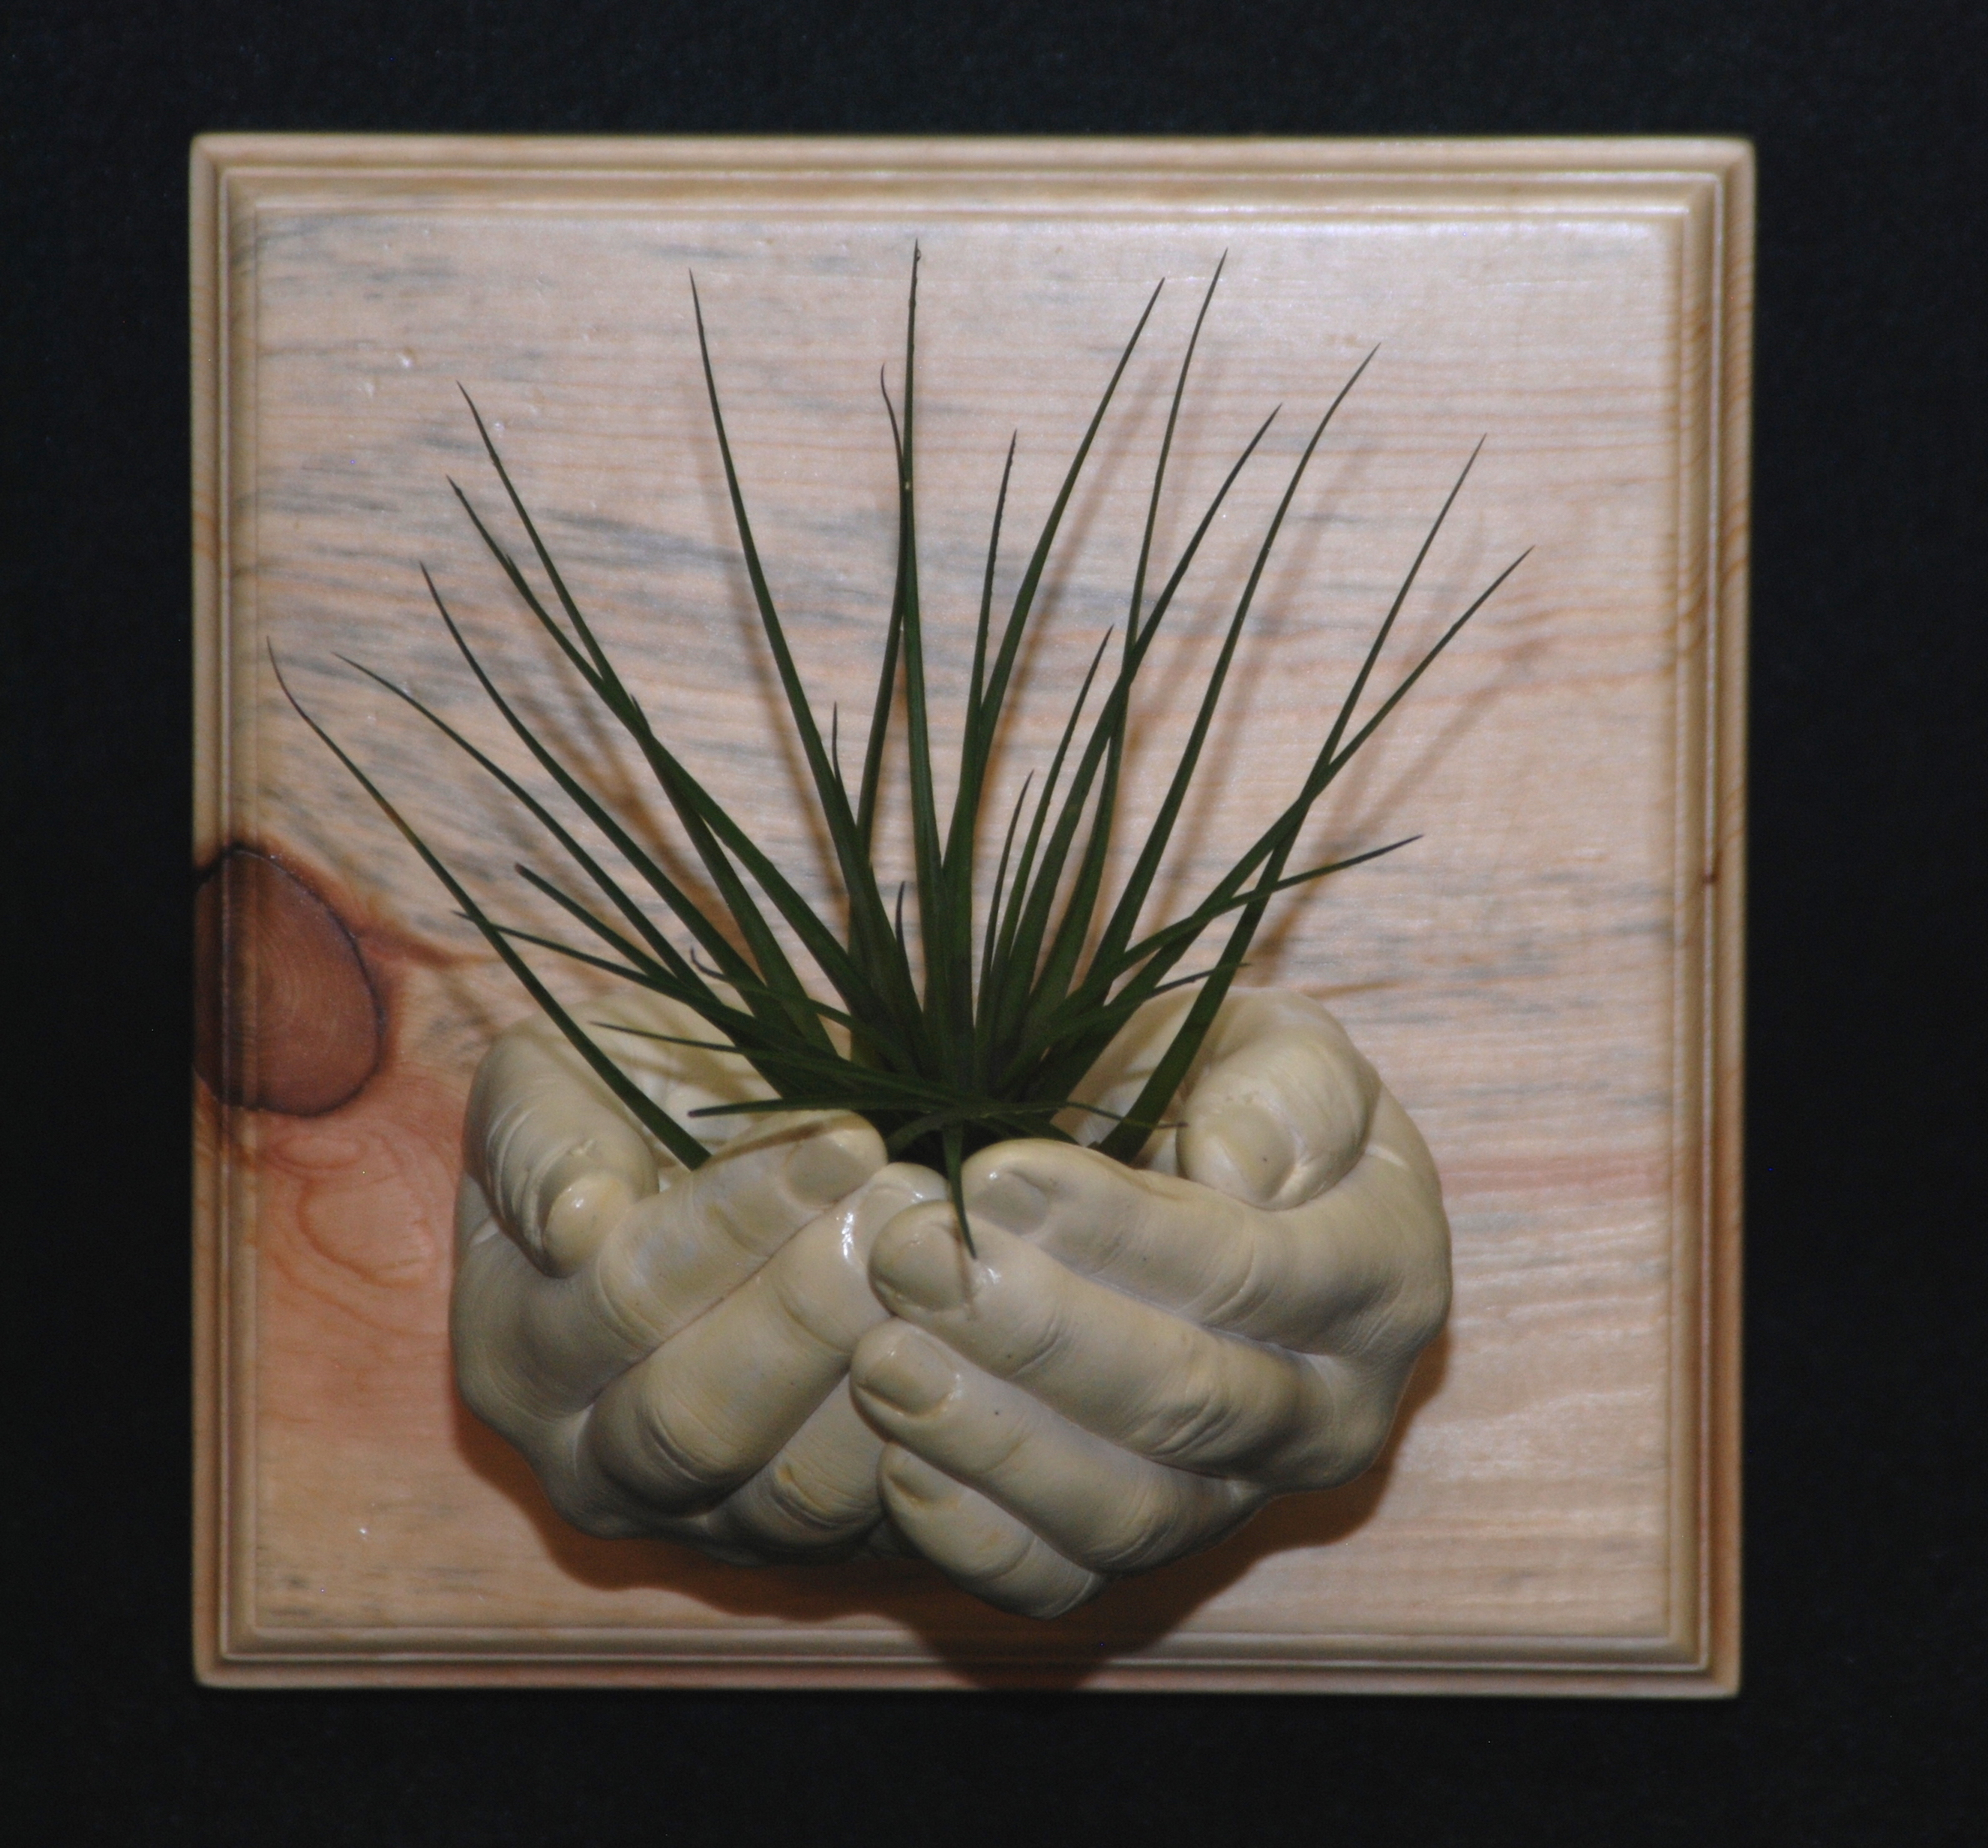 sculpture of hands displayed on beetle kill pine with air plant